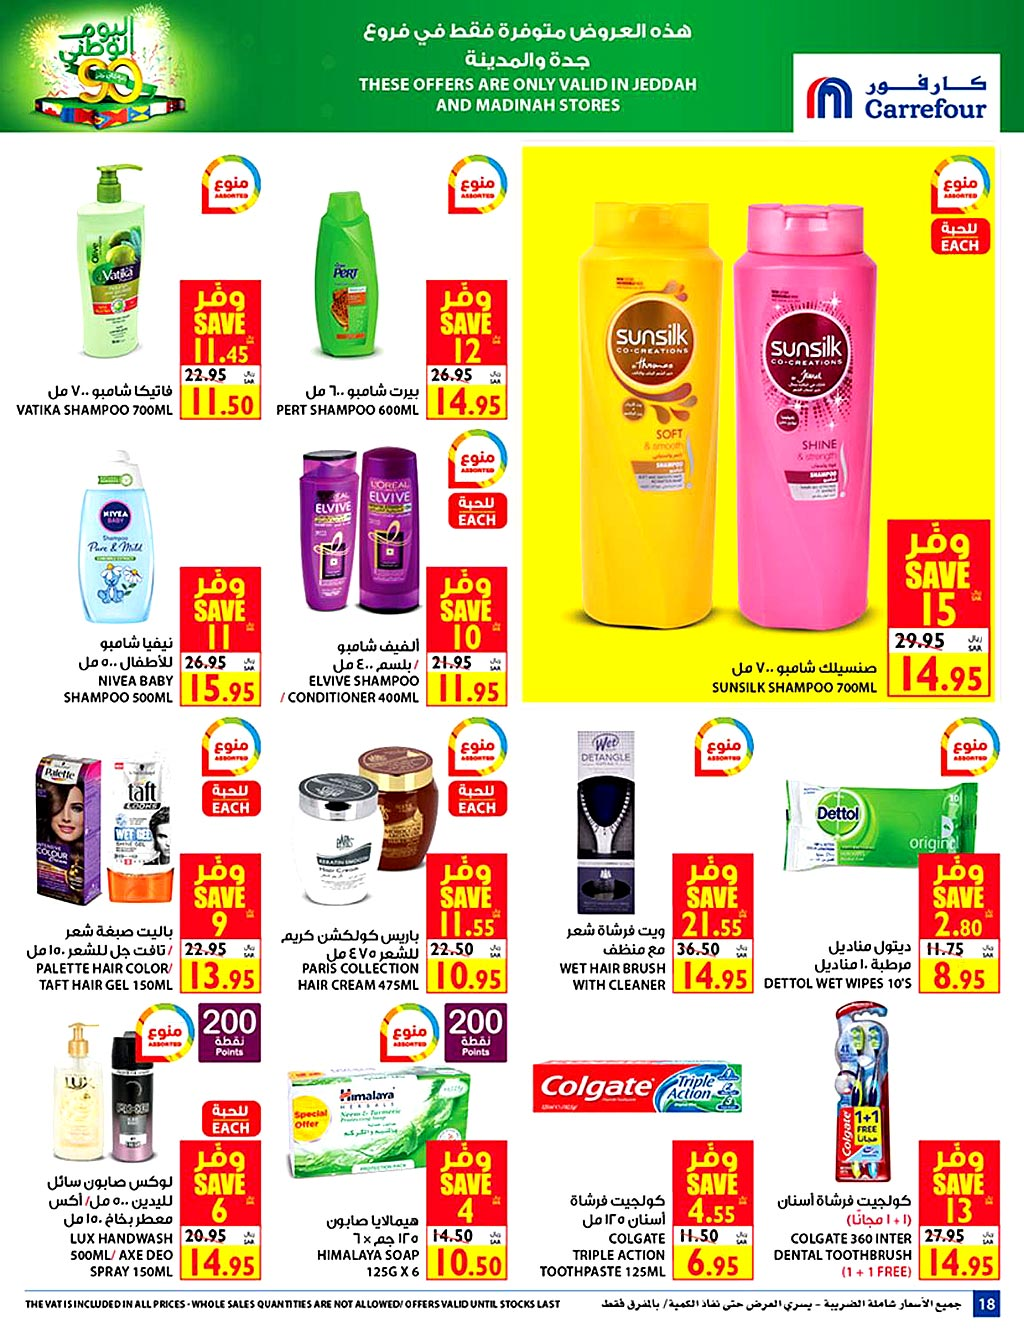 carrefour offers from 9sep to 22sep 2020 page number 17 عروض كارفور-السعودية من 9 سبتمبر حتى 22 سبتمبر 2020 صفحة رقم 17